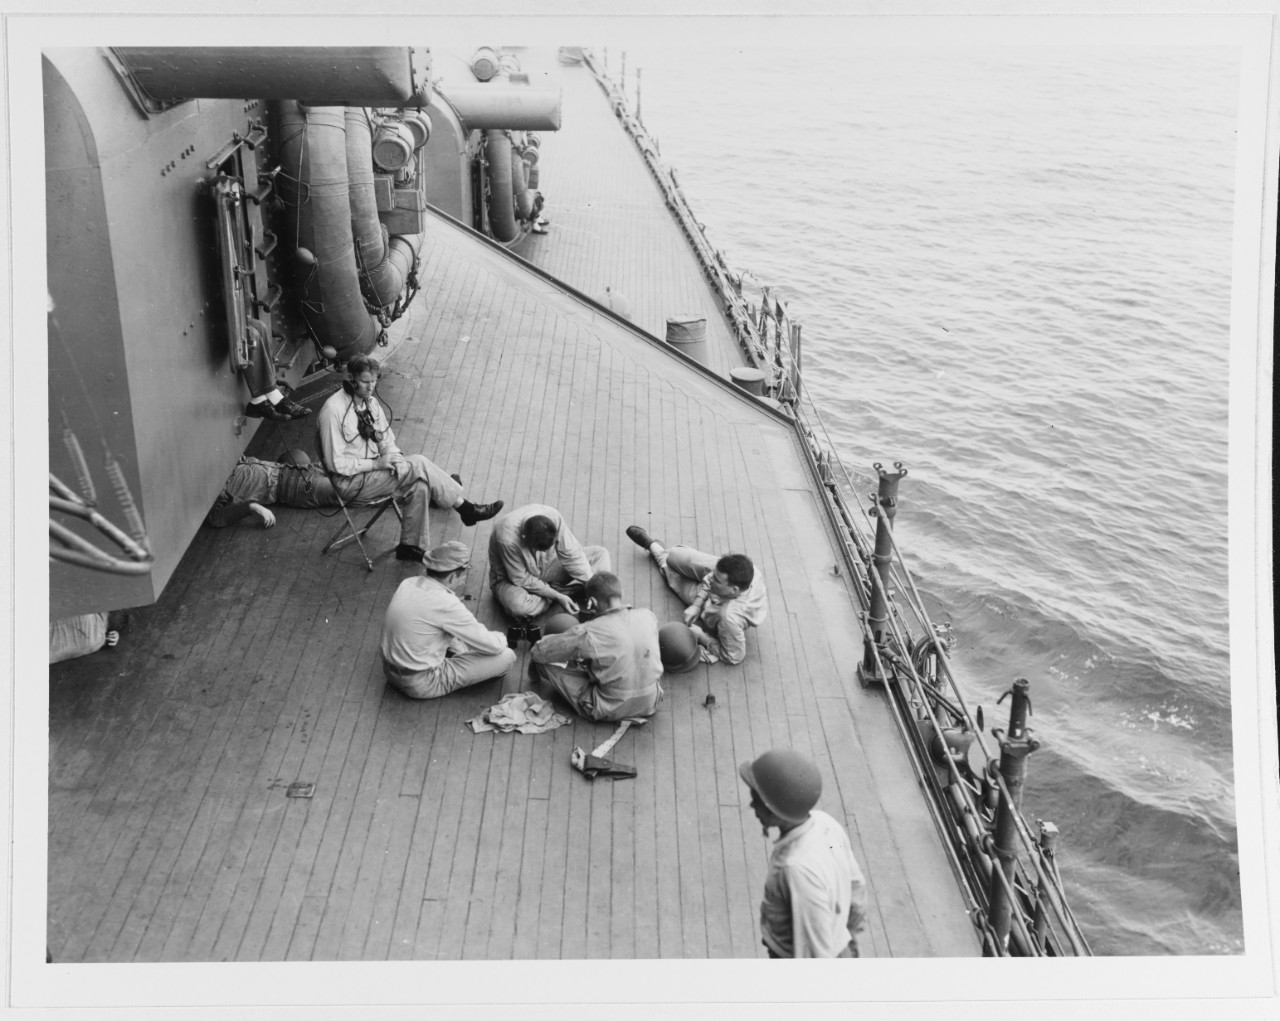 Men rest on Chicago's deck beside 8-inch turret No. II, 9 August 1942. The view looks forward on the starboard side, as the ship appears to be underway. Note the lookout in the chair wearing the headphones, the .45 caliber M1911 pistol in the holster on deck, the lifelines cleared away, the life rafts carried on the turret side, and the wooden decking. (U.S. Navy Photograph 80-G-13490, National Archives and Records Administration, Still Pictures Branch, College Park, Md.)